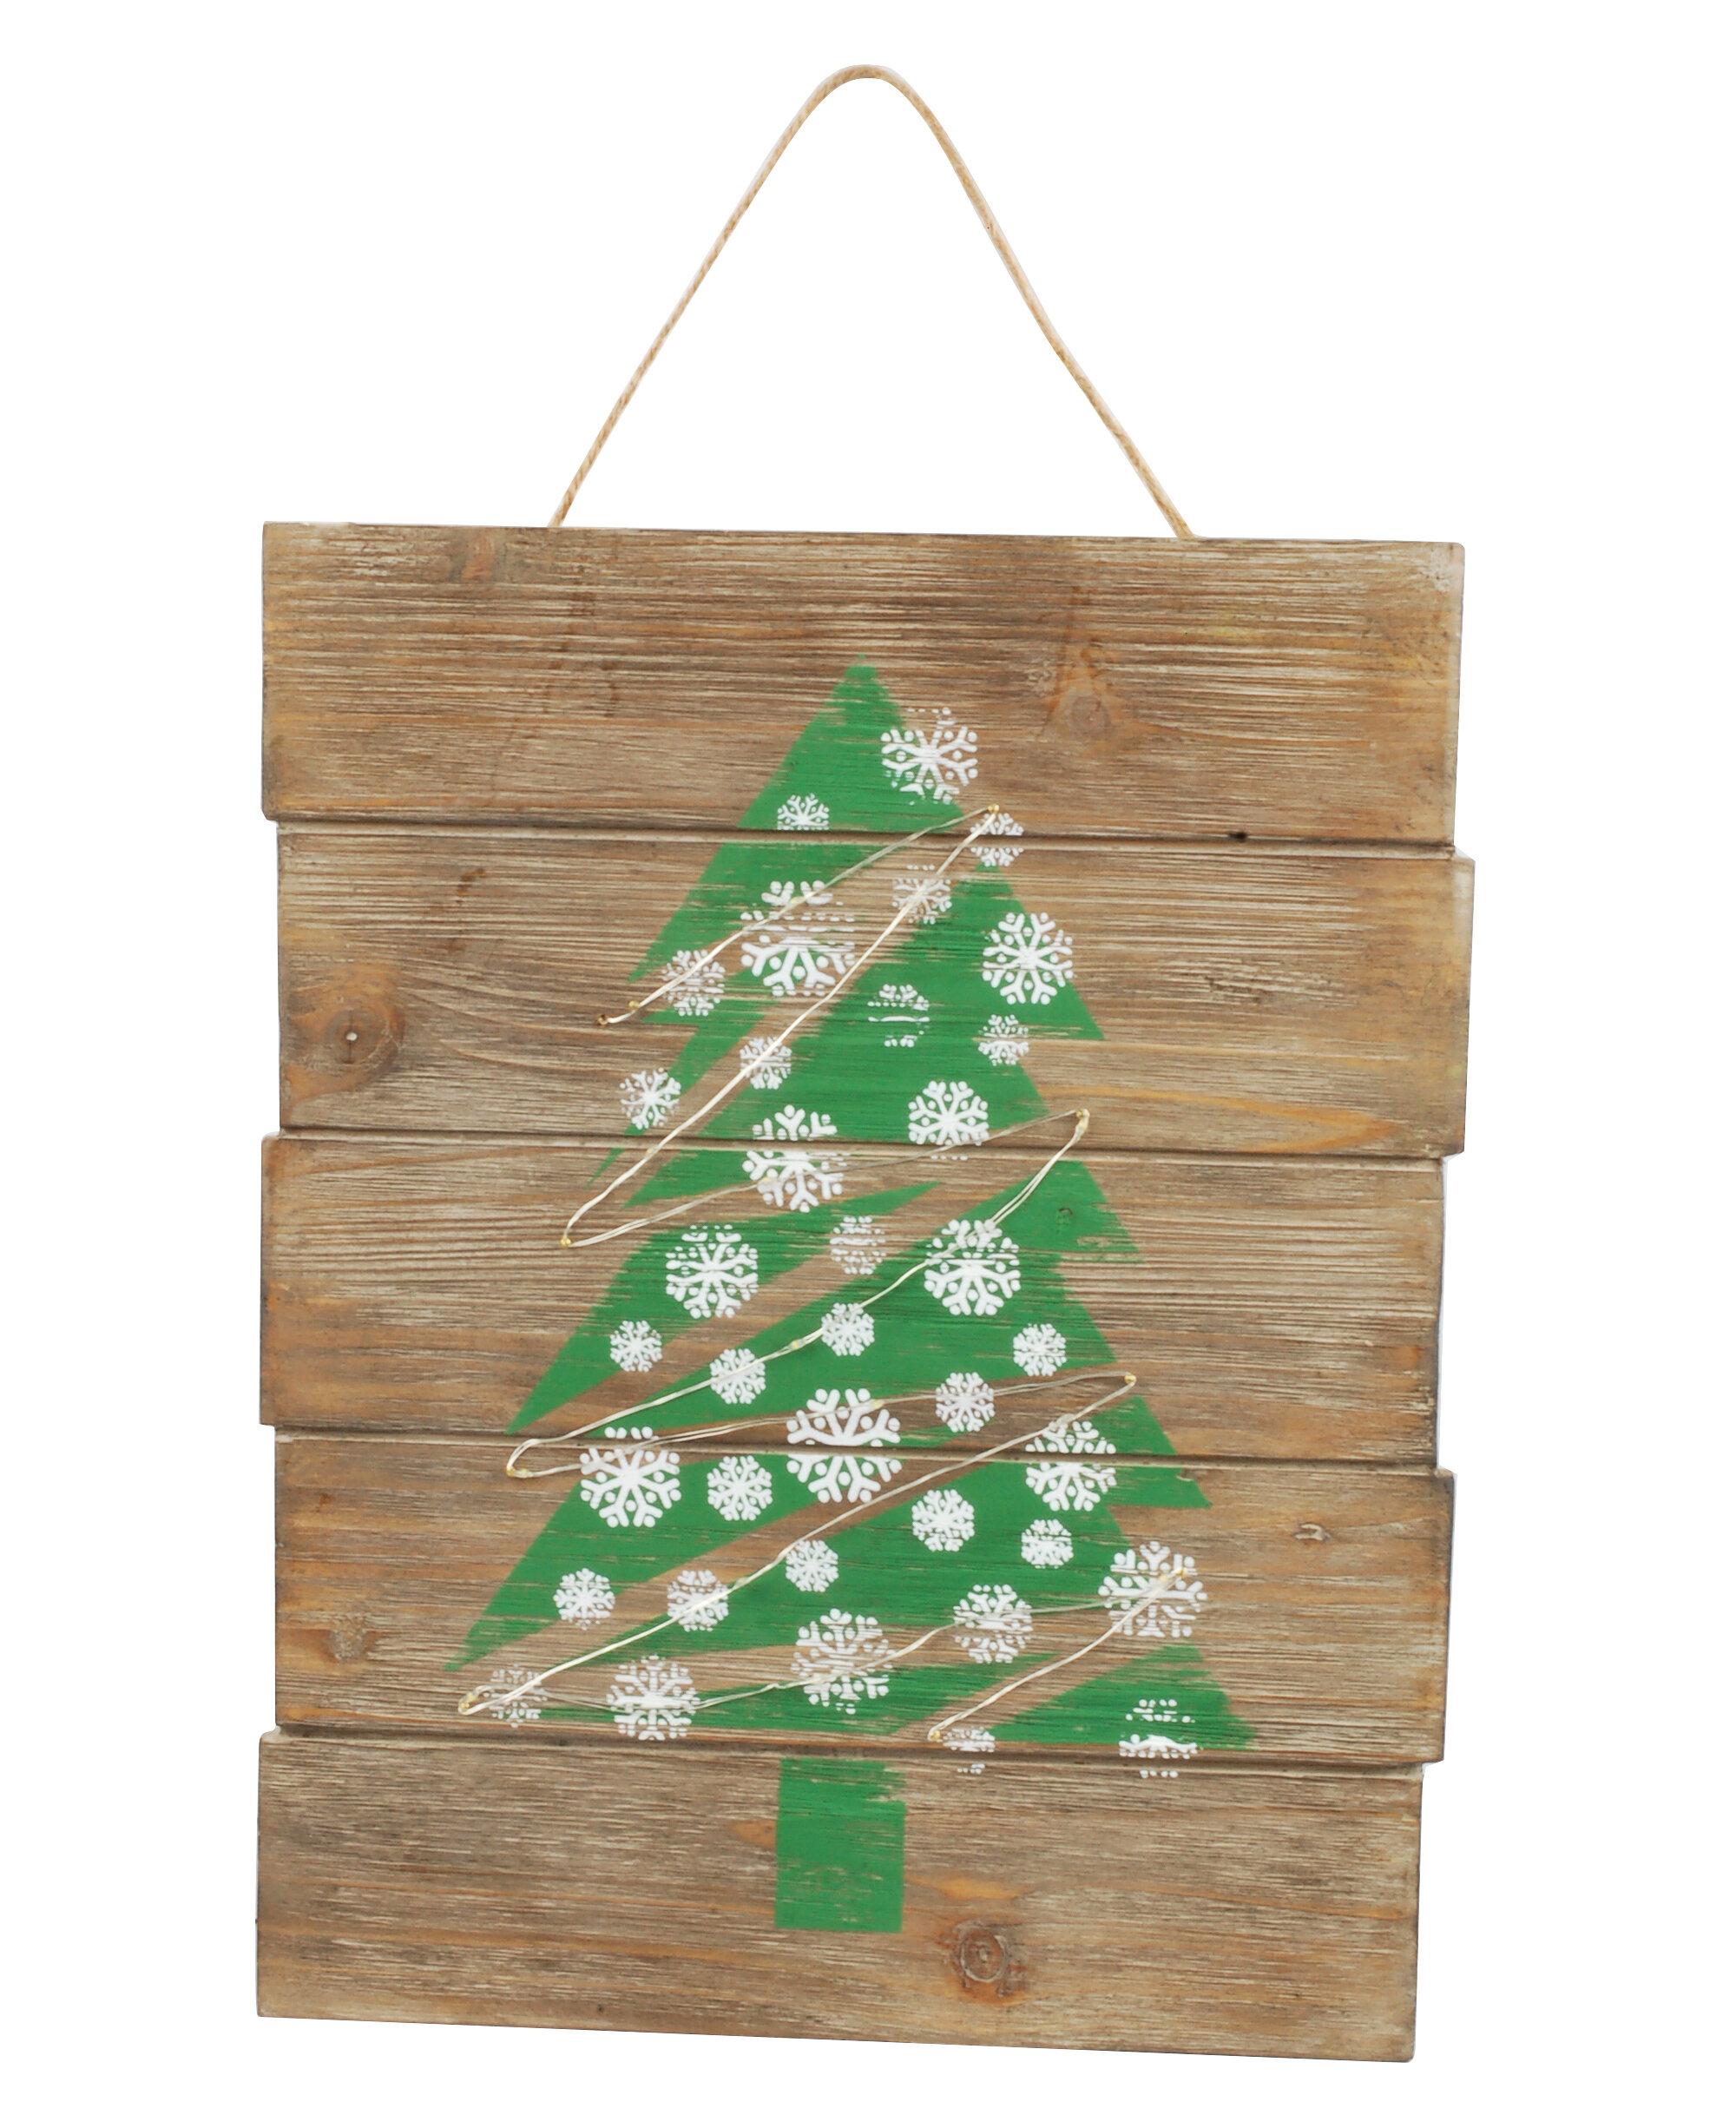 the holiday aisle christmas tree led illuminated wooden sign wayfair - Wooden Led Christmas Decoration